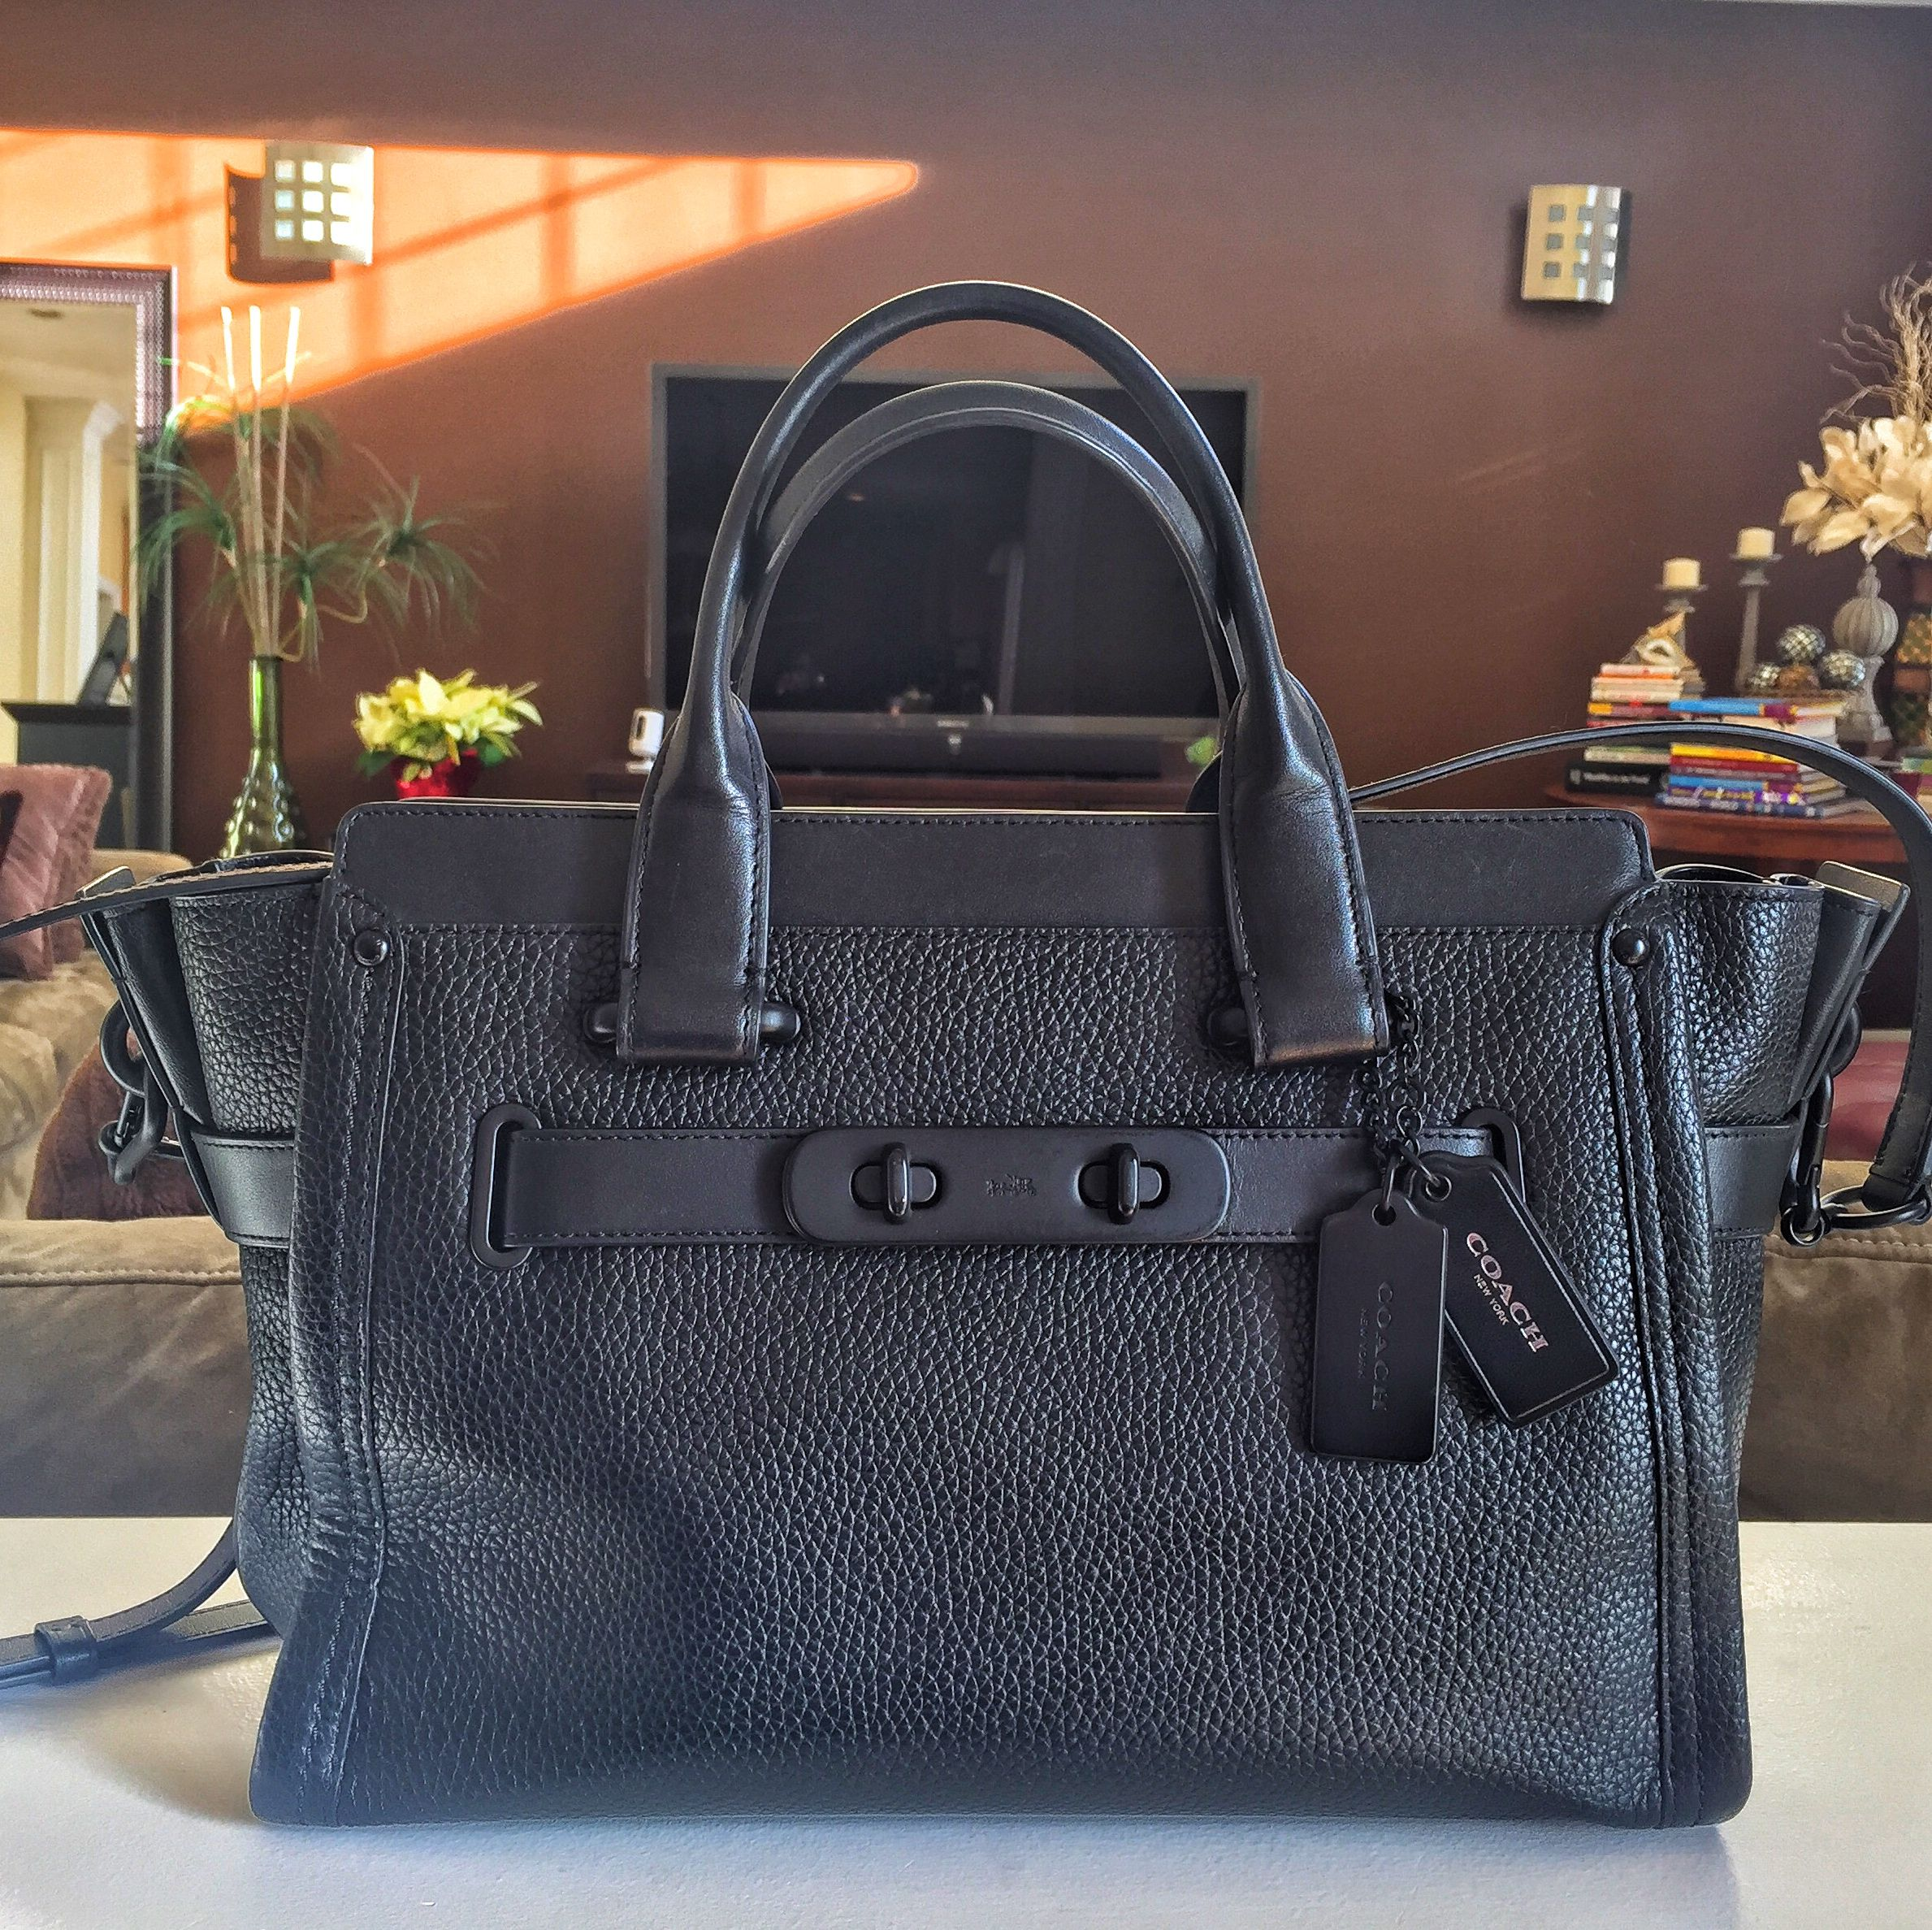 5e4328243396 My everyday favorite! Coach Swagger Carryall in Pebble Leather